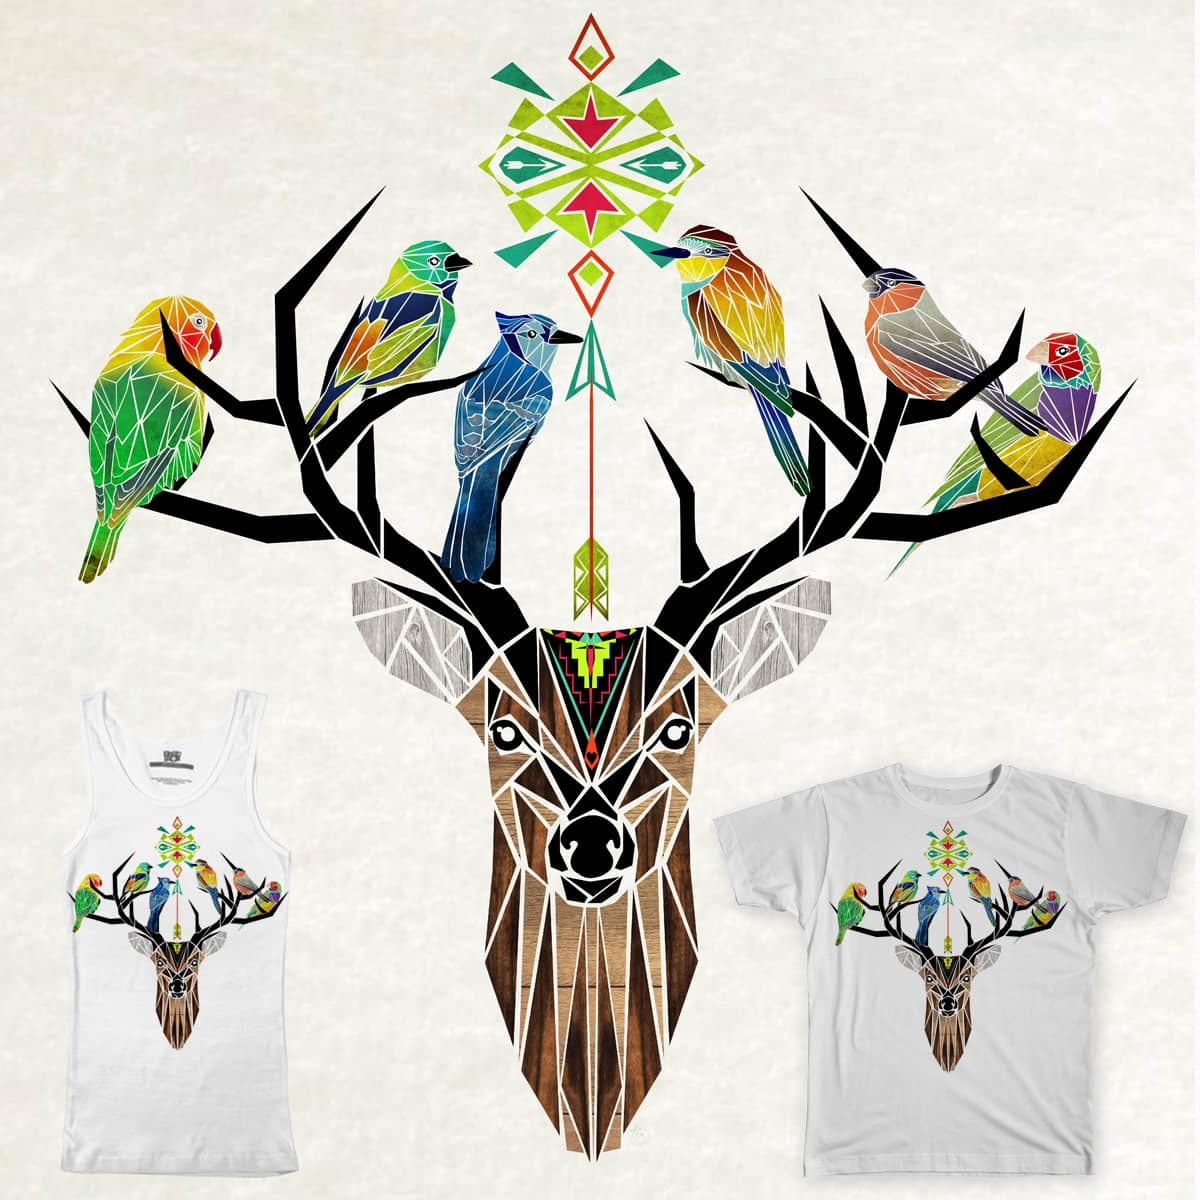 deer birds  by Manoou on Threadless